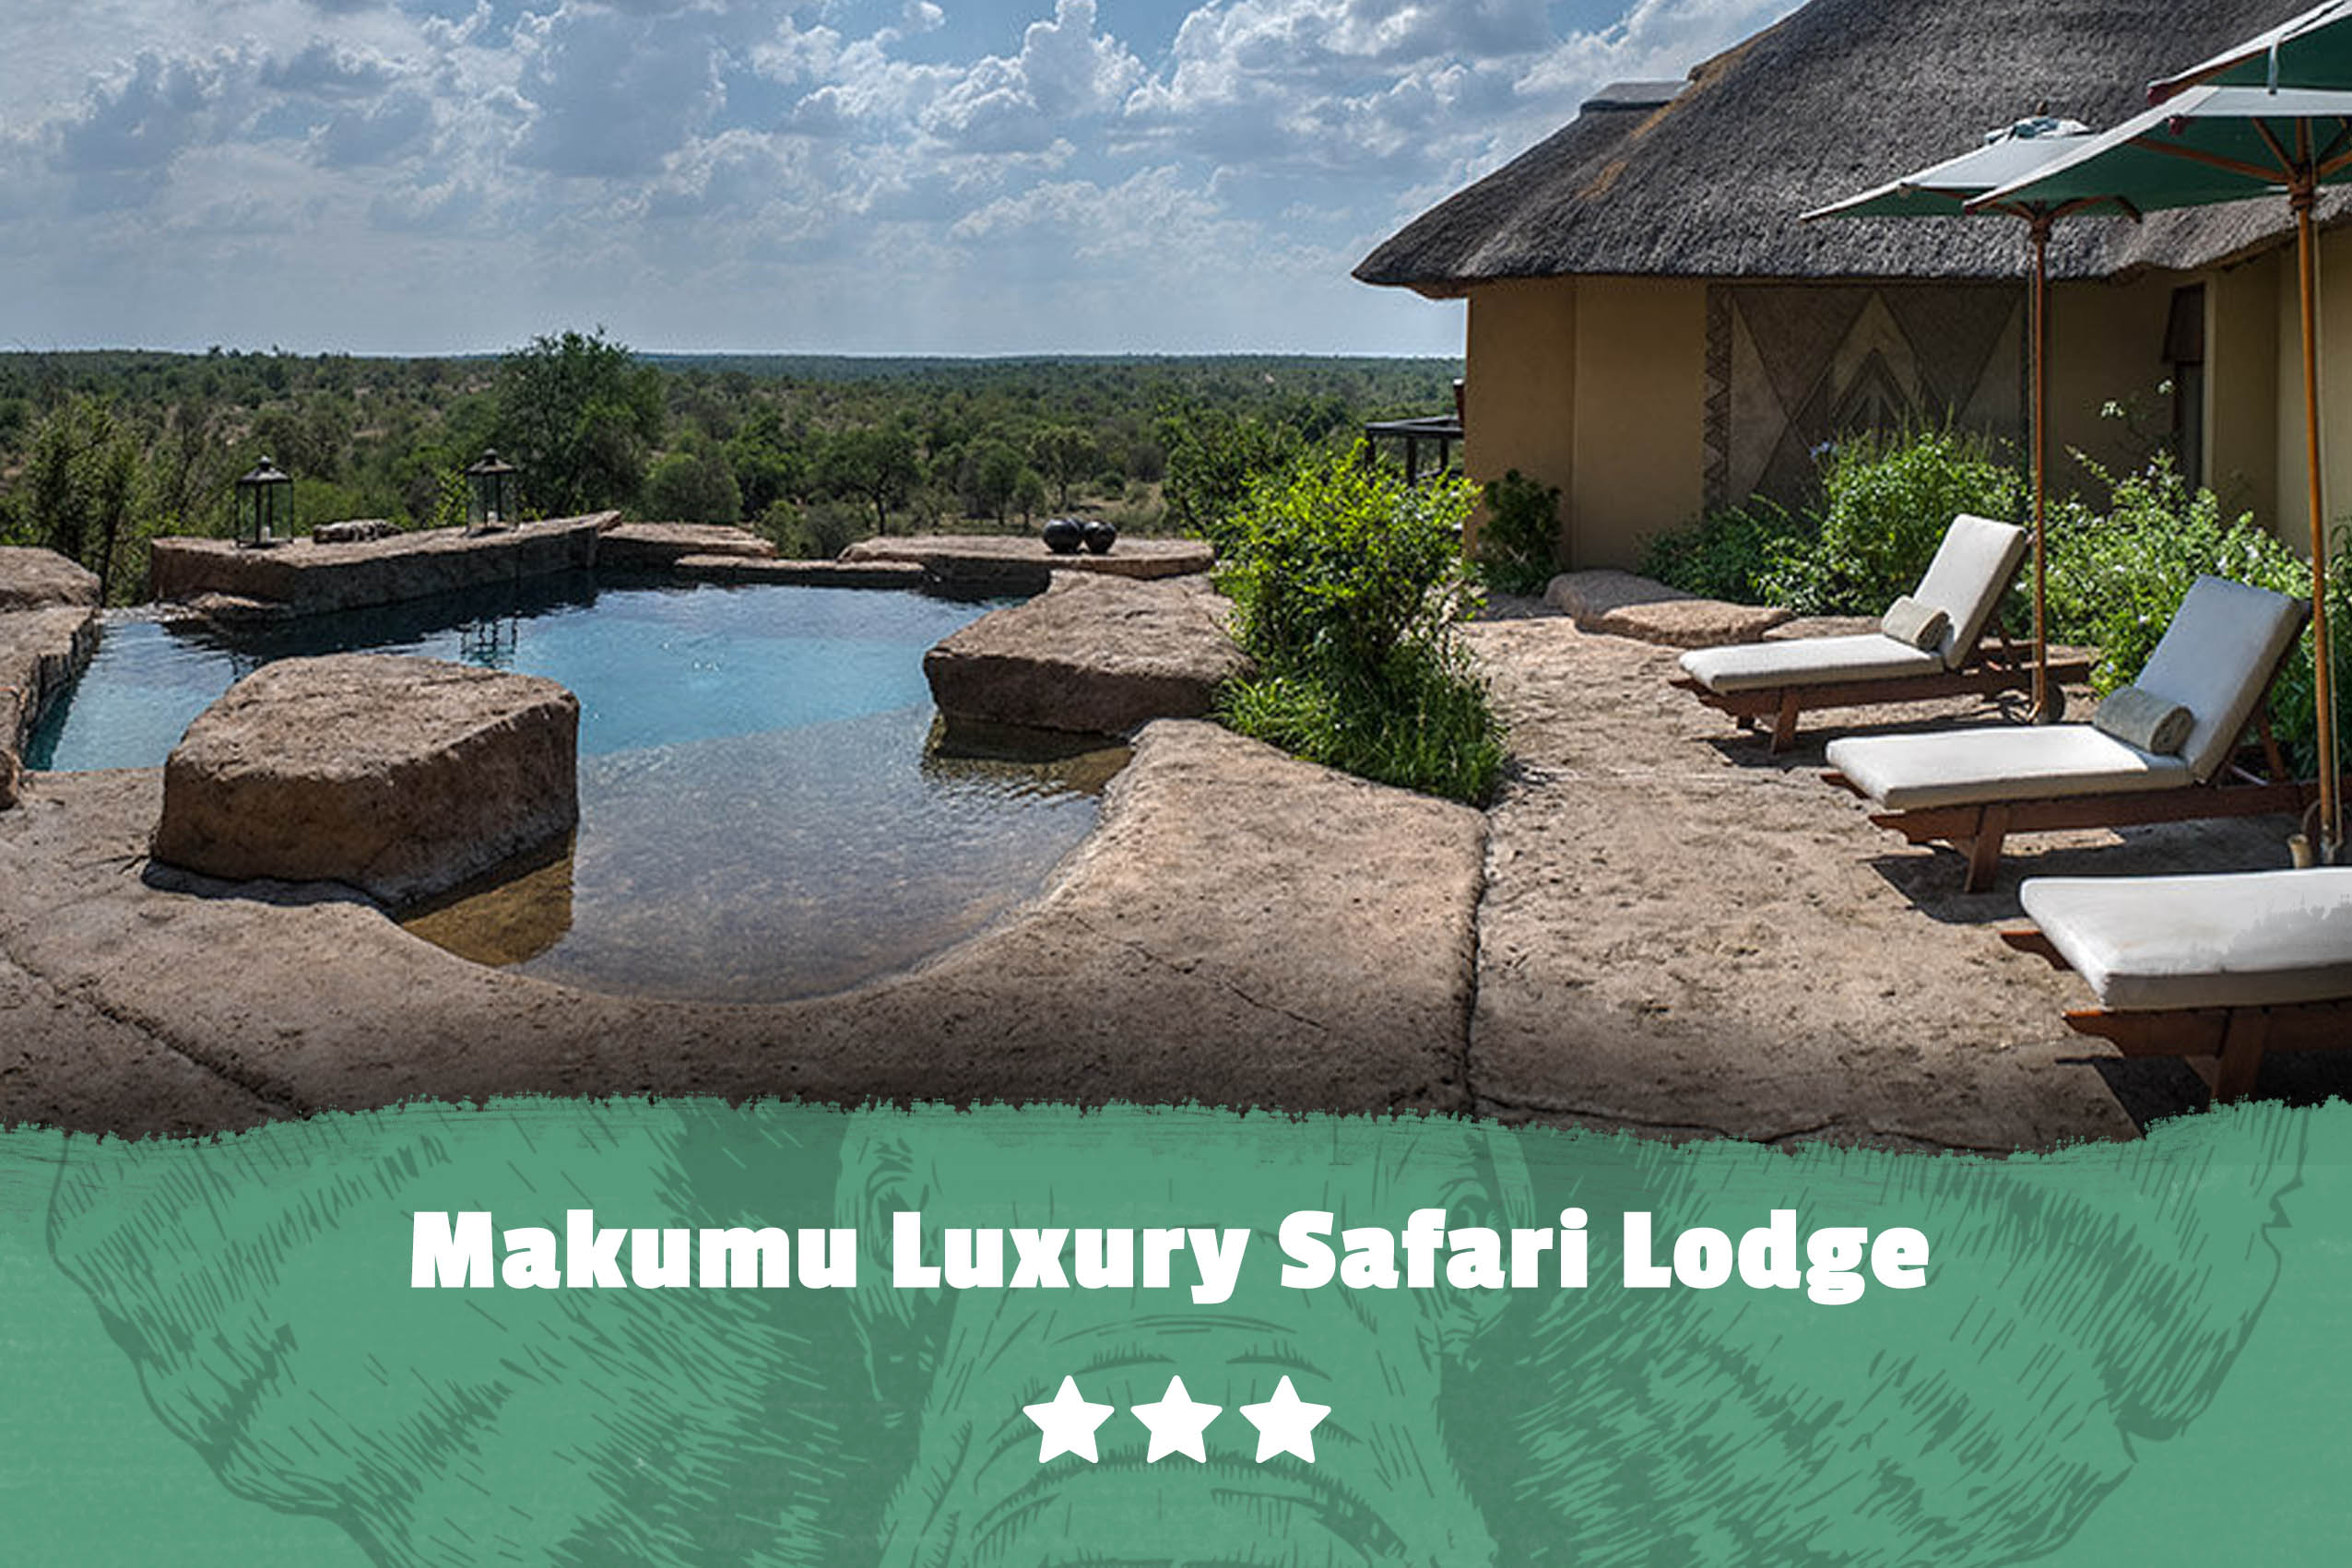 Kruger featured image Makumu Luxury Safari Lodge